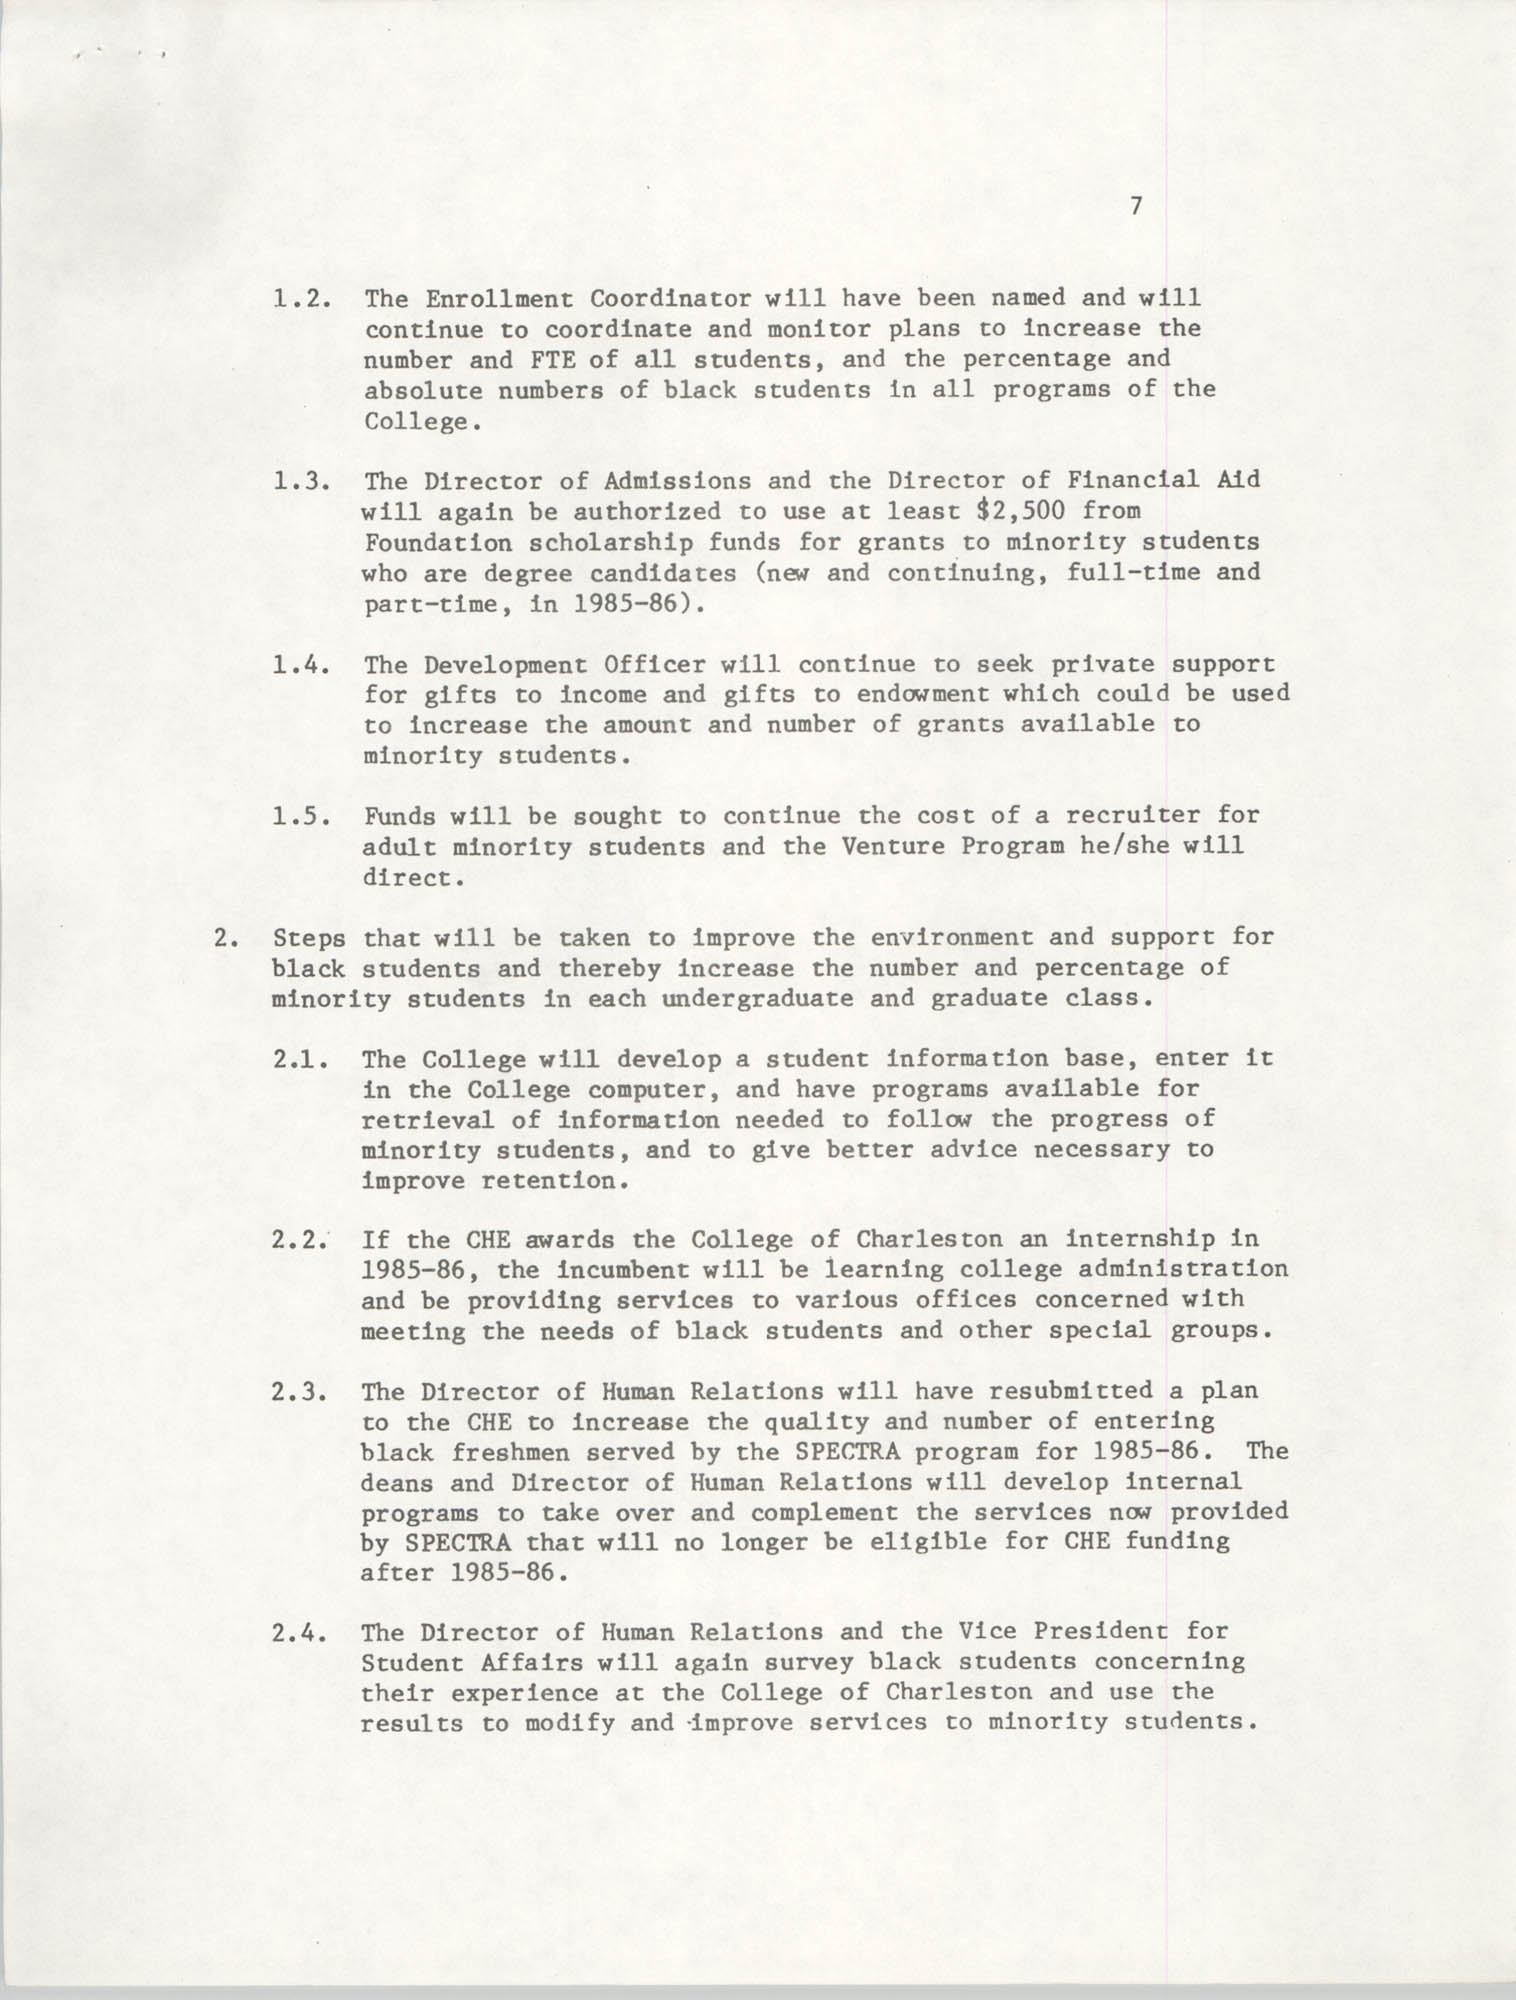 College of Charleston, Updated Summary of Desegregation Efforts, Page 7